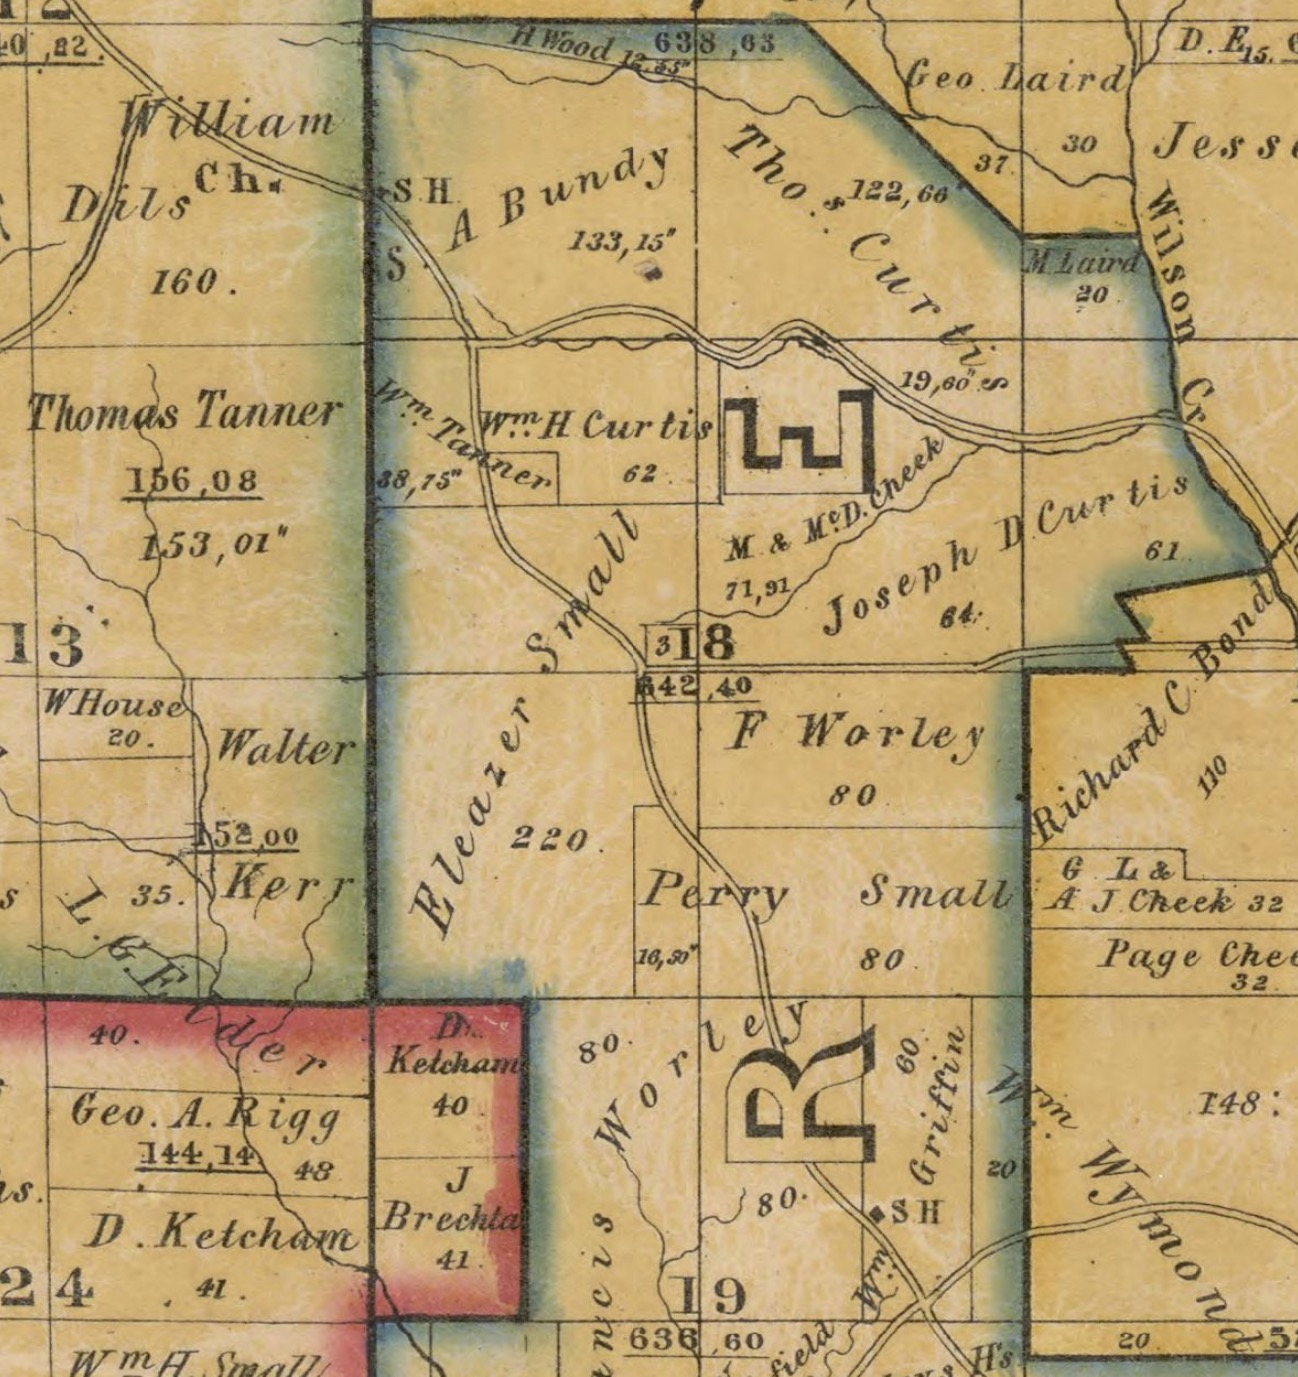 Indiana Genealogical Society Blog Online Historical Indiana Plat Maps - Indiana maps